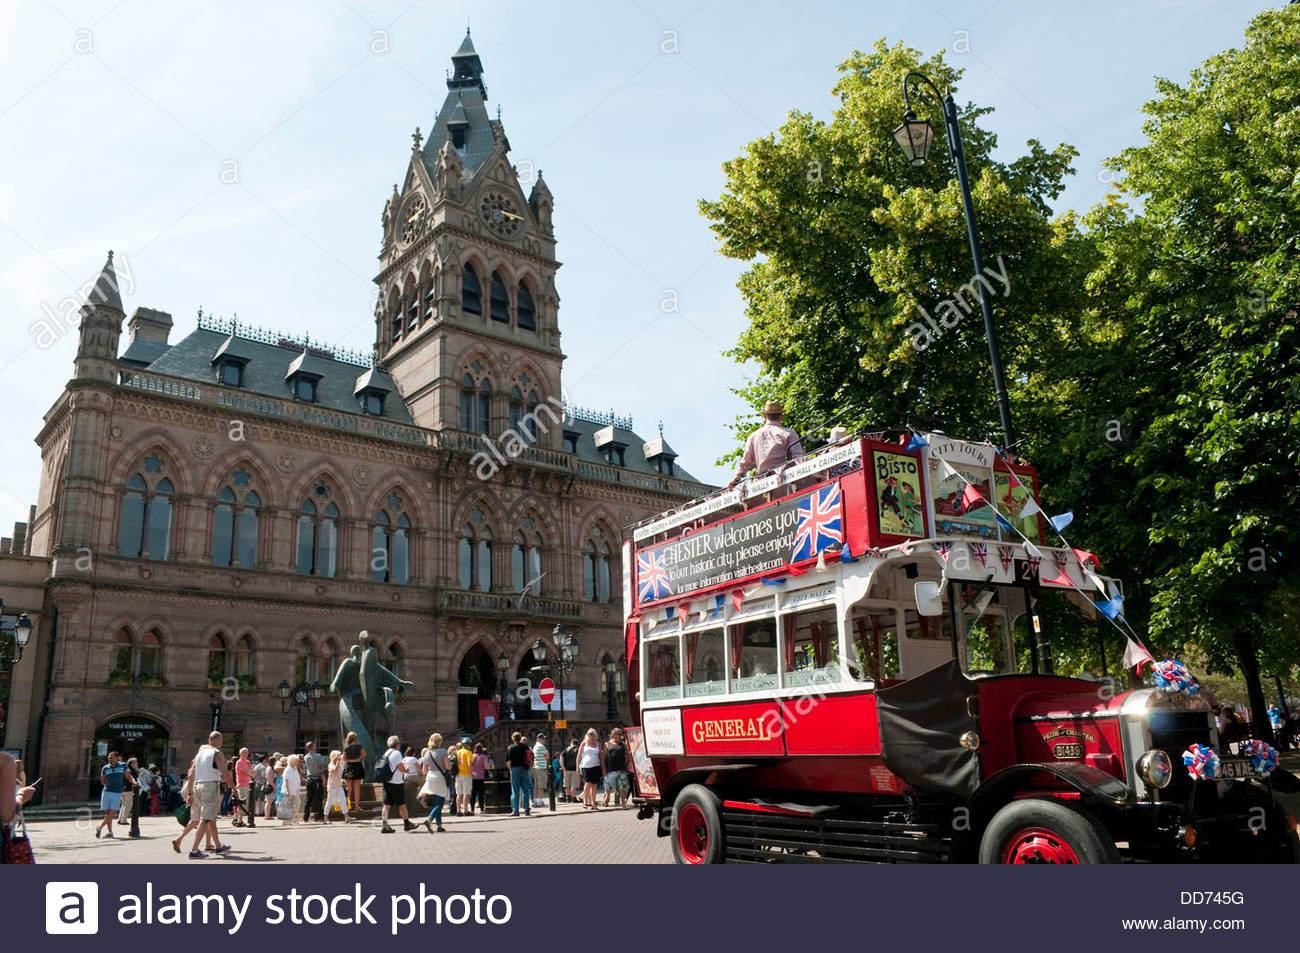 Tourist city tours bus and Town Hall, Chester, UK - Stock Image